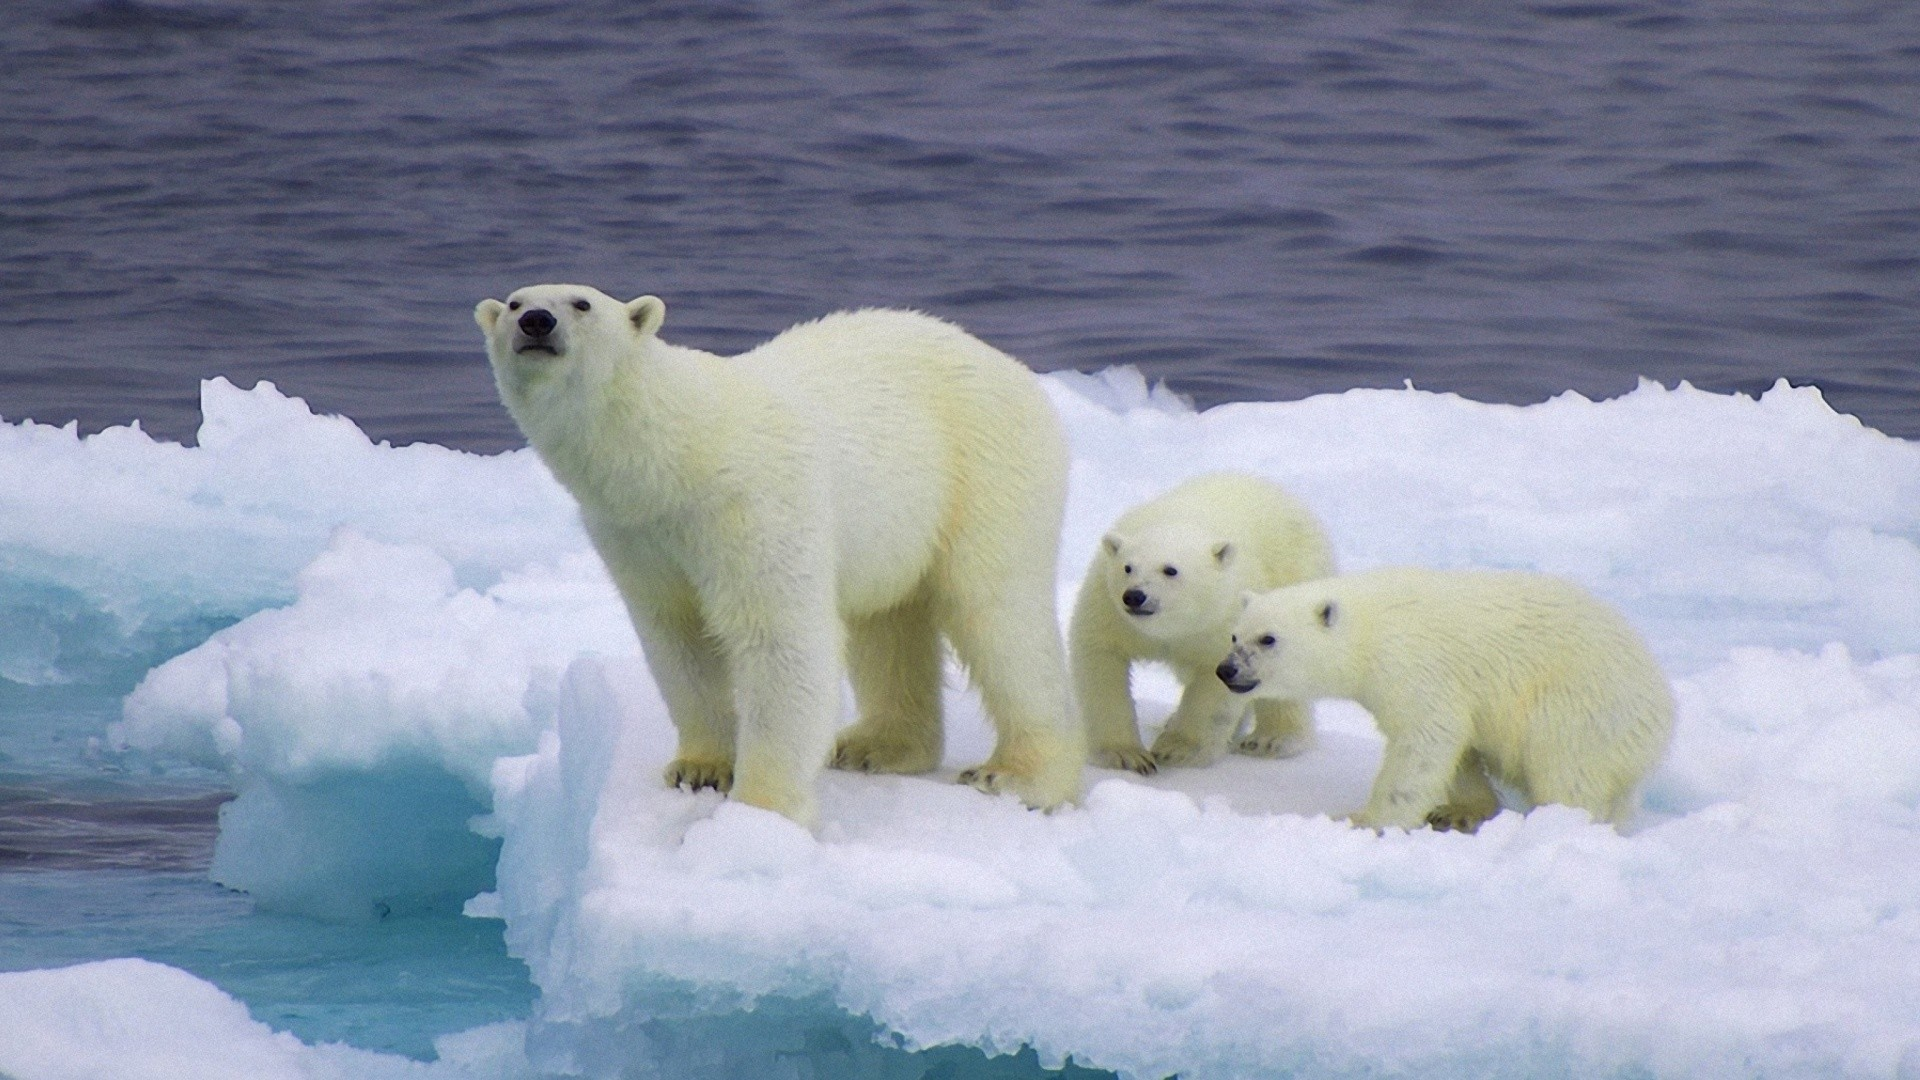 1920x1080 And Cubs On Iceberg  wallpaper1920X1080 wallpaper screensaver .